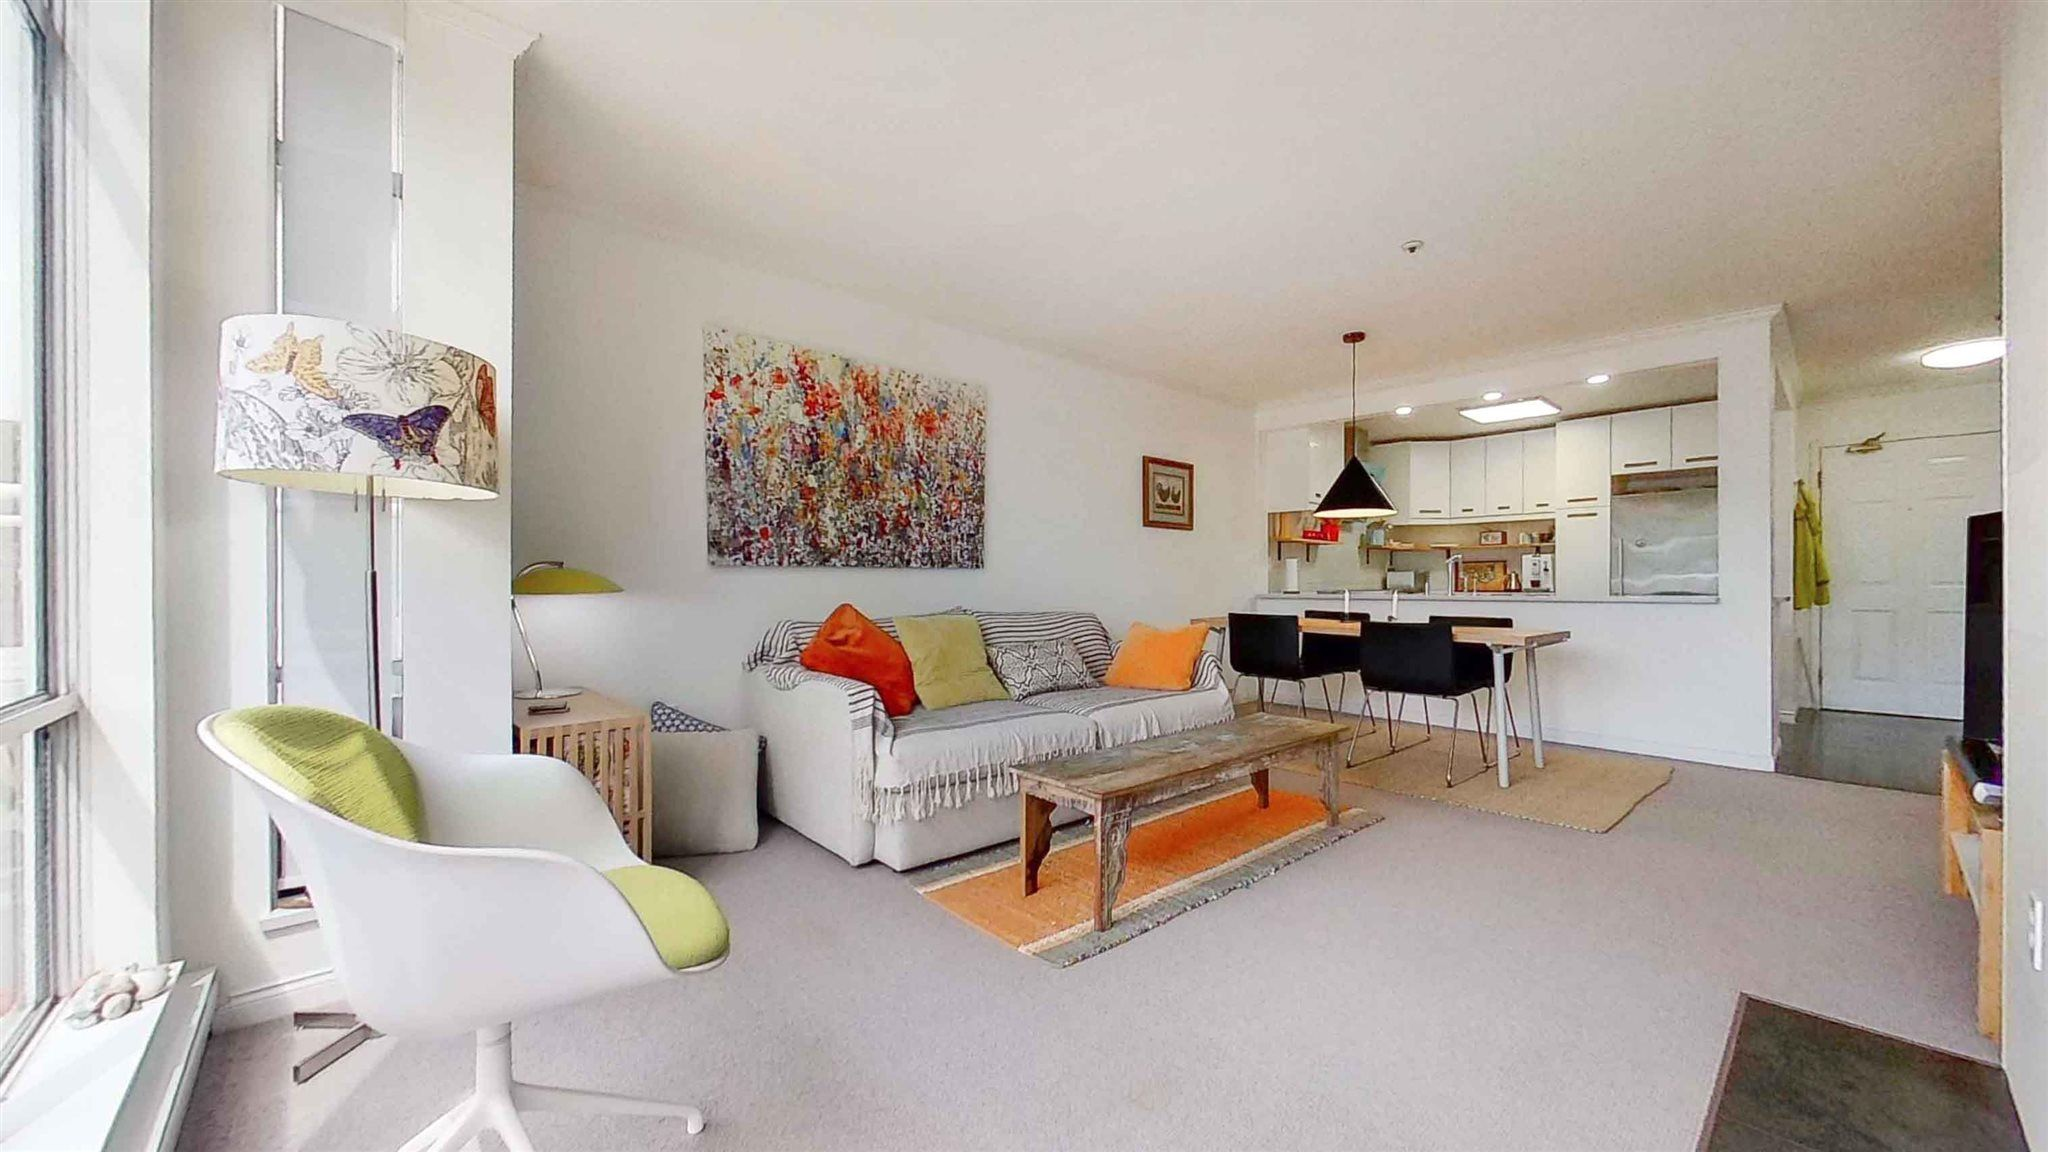 """Main Photo: 408 2288 W 12TH Avenue in Vancouver: Kitsilano Condo for sale in """"CONNAUGHT POINT"""" (Vancouver West)  : MLS®# R2594302"""